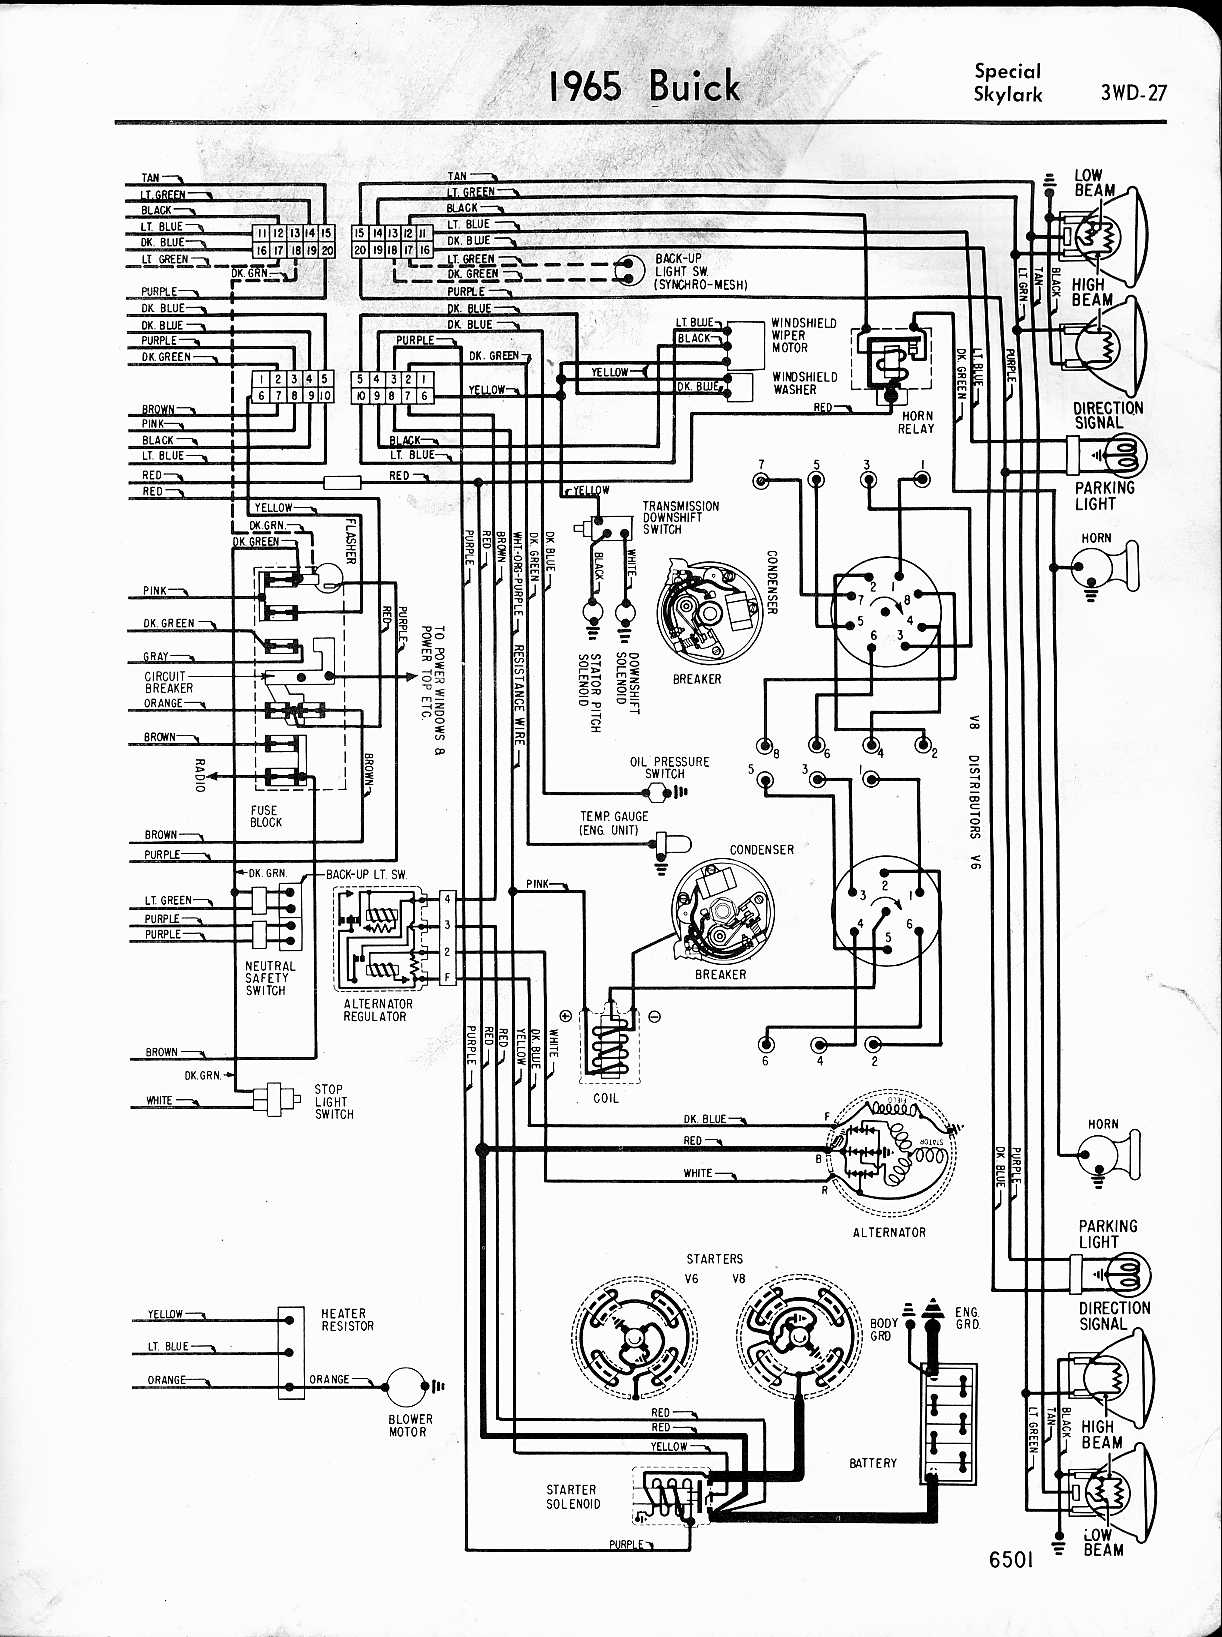 1968 buick fuse box diy enthusiasts wiring diagrams u2022 rh okdrywall co